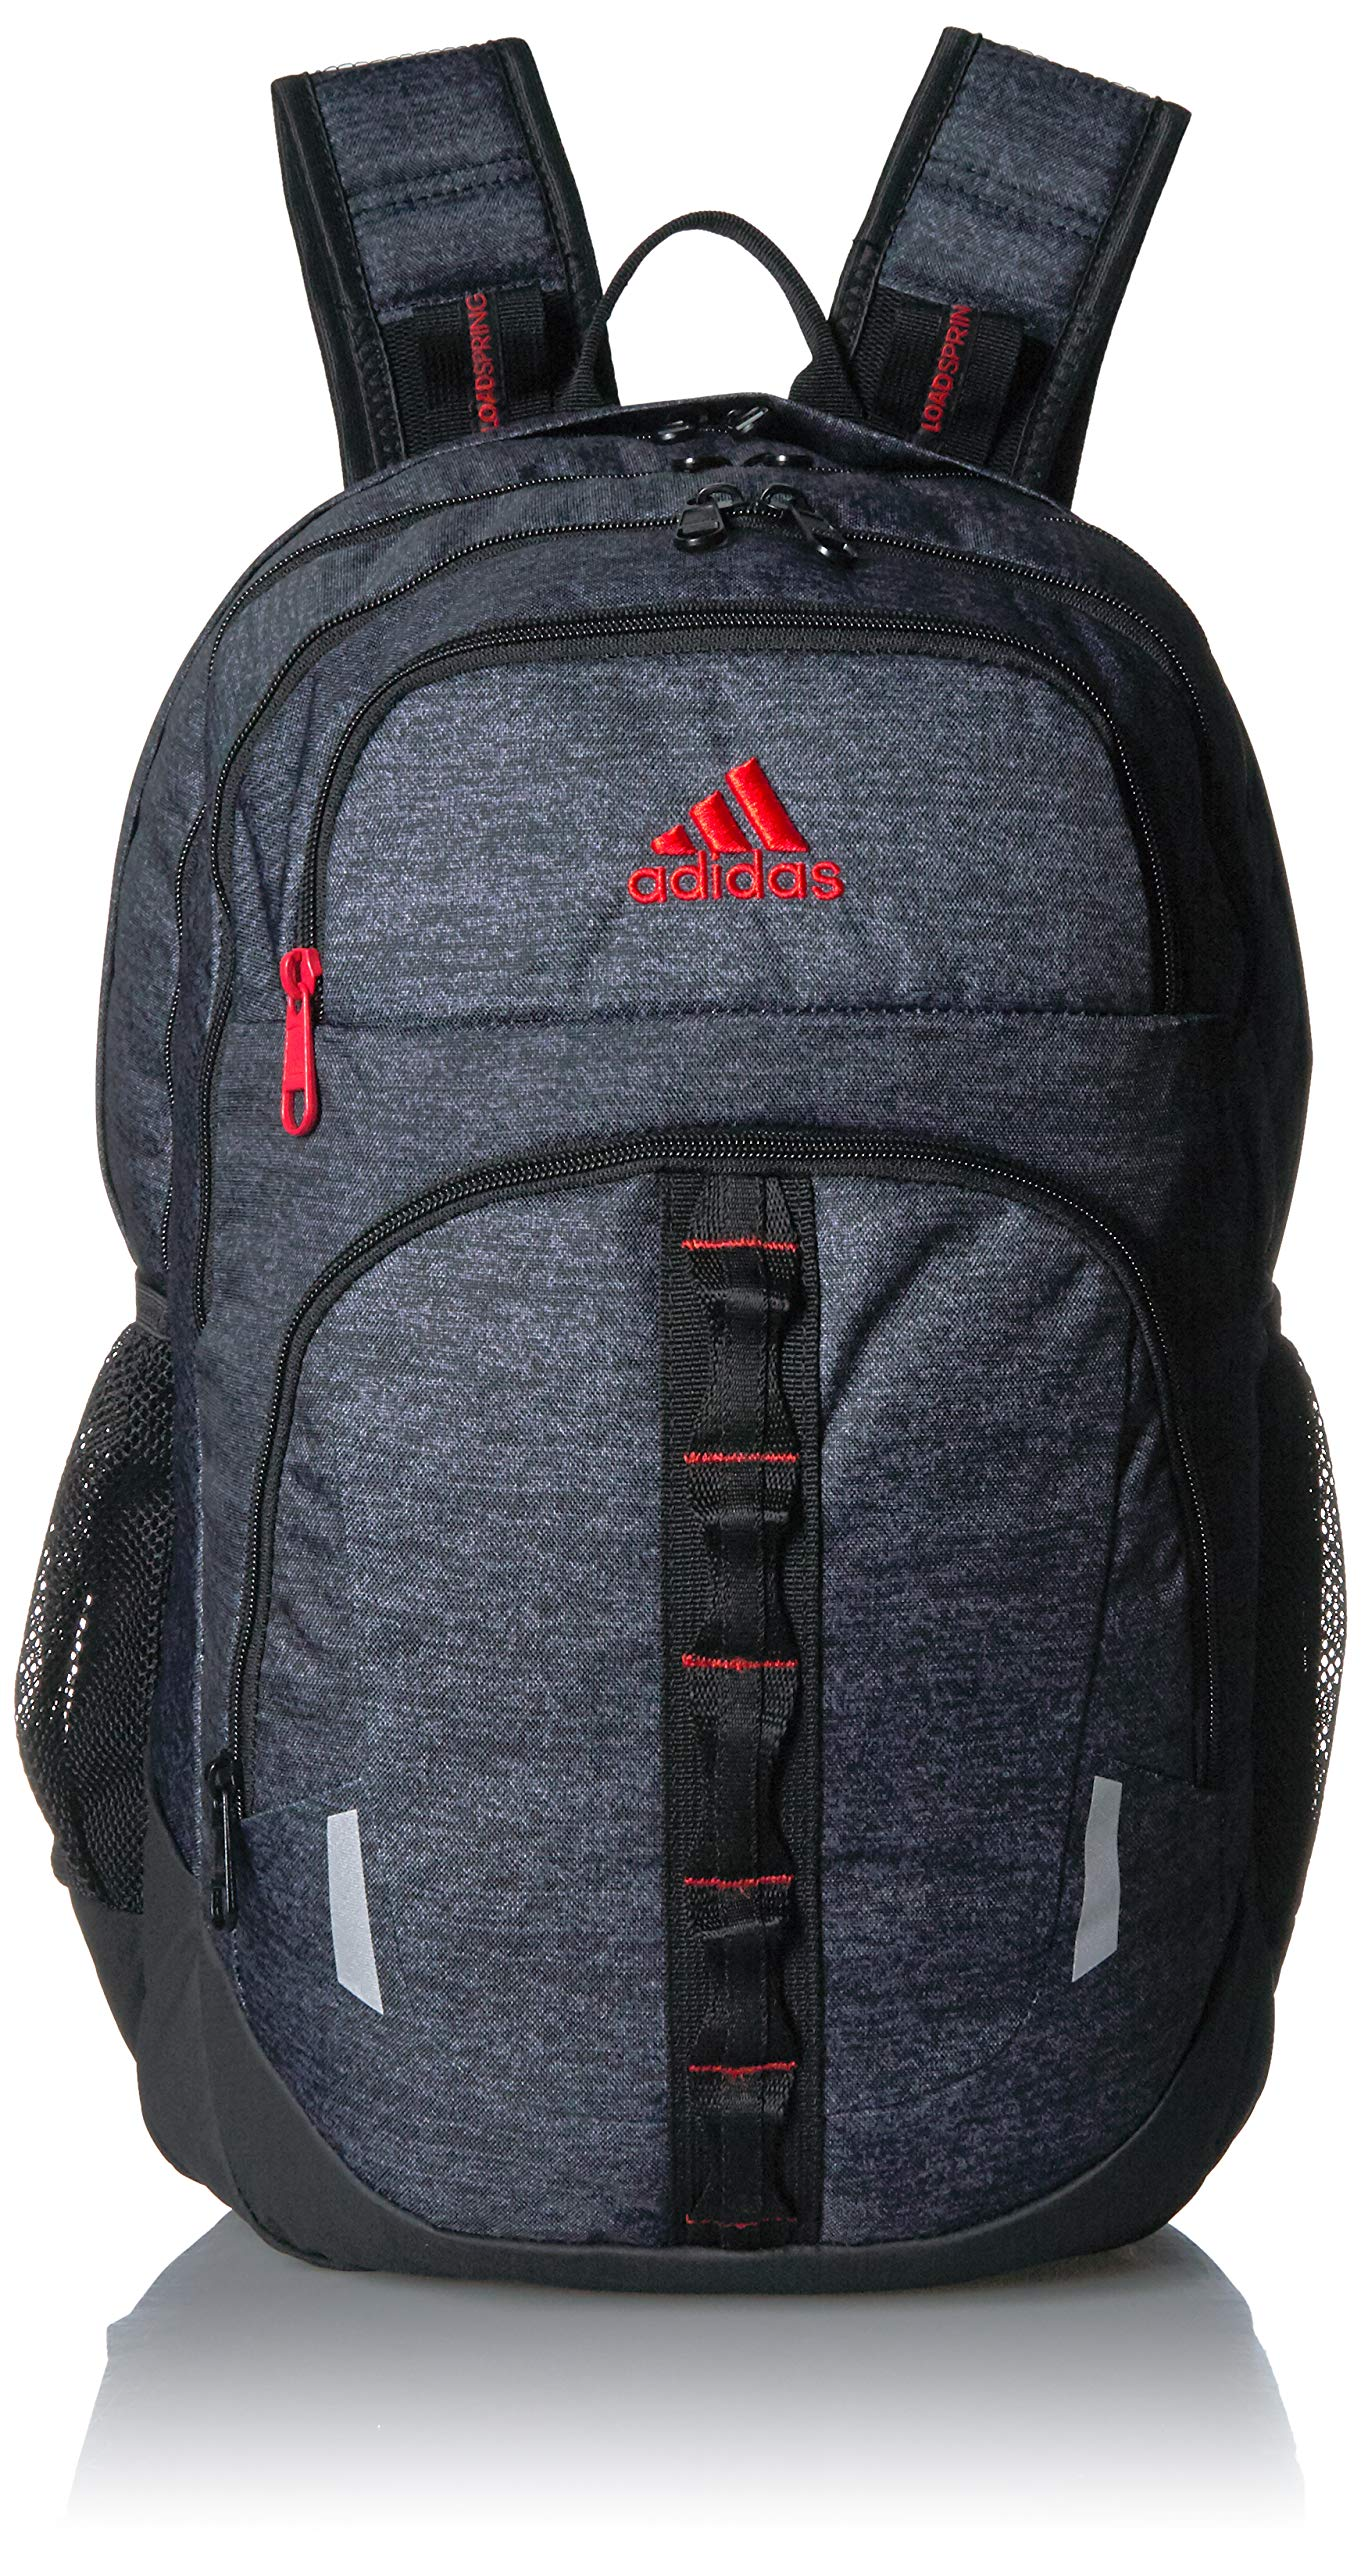 adidas Unisex Prime Backpack, Black Jersey/Active Red, ONE SIZE by adidas